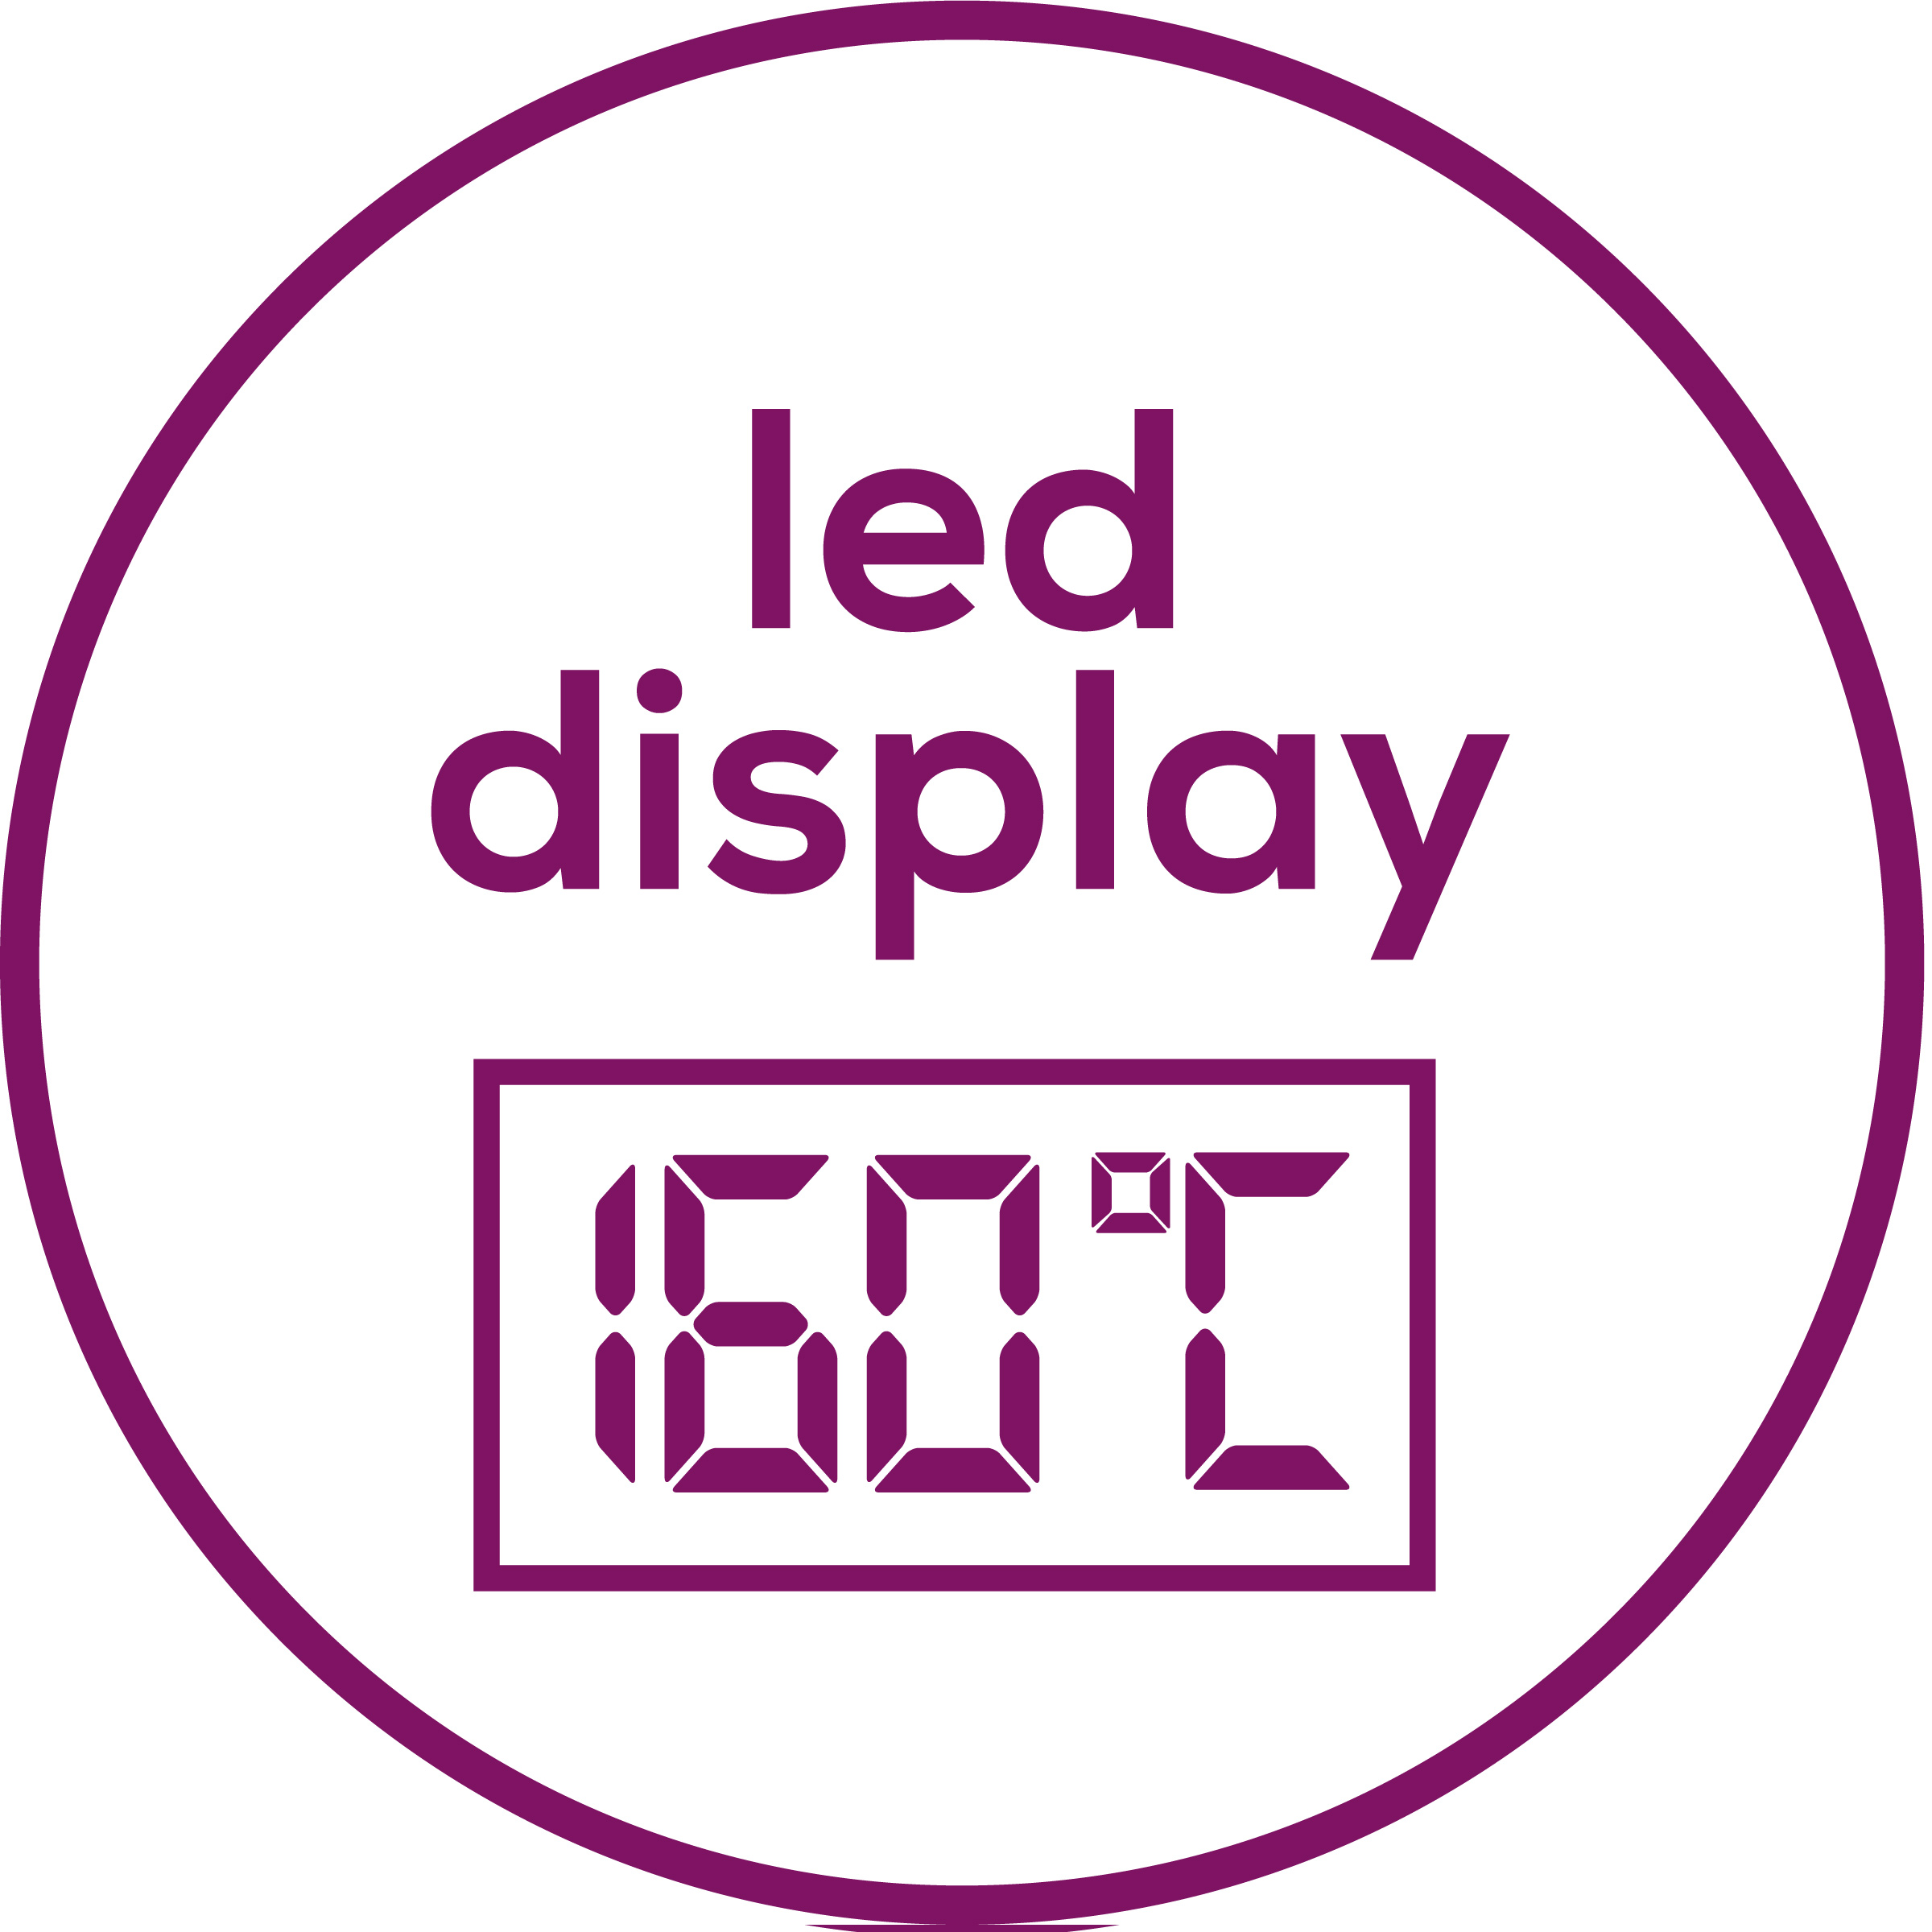 LED display To show the battery state and intensity level